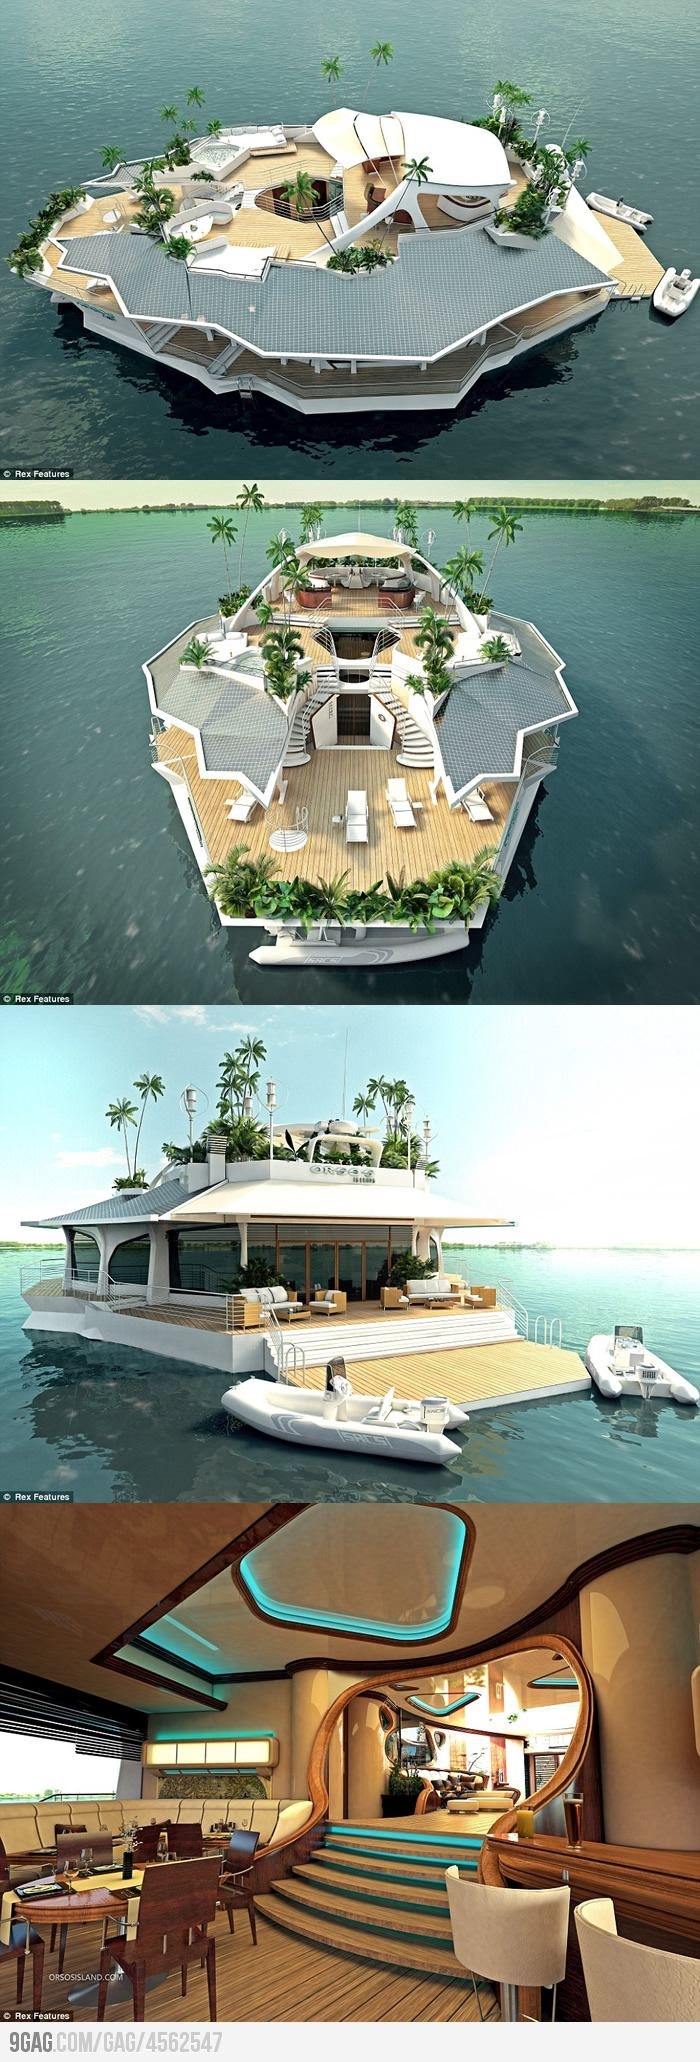 Floating Island Boat Home for those who have everything